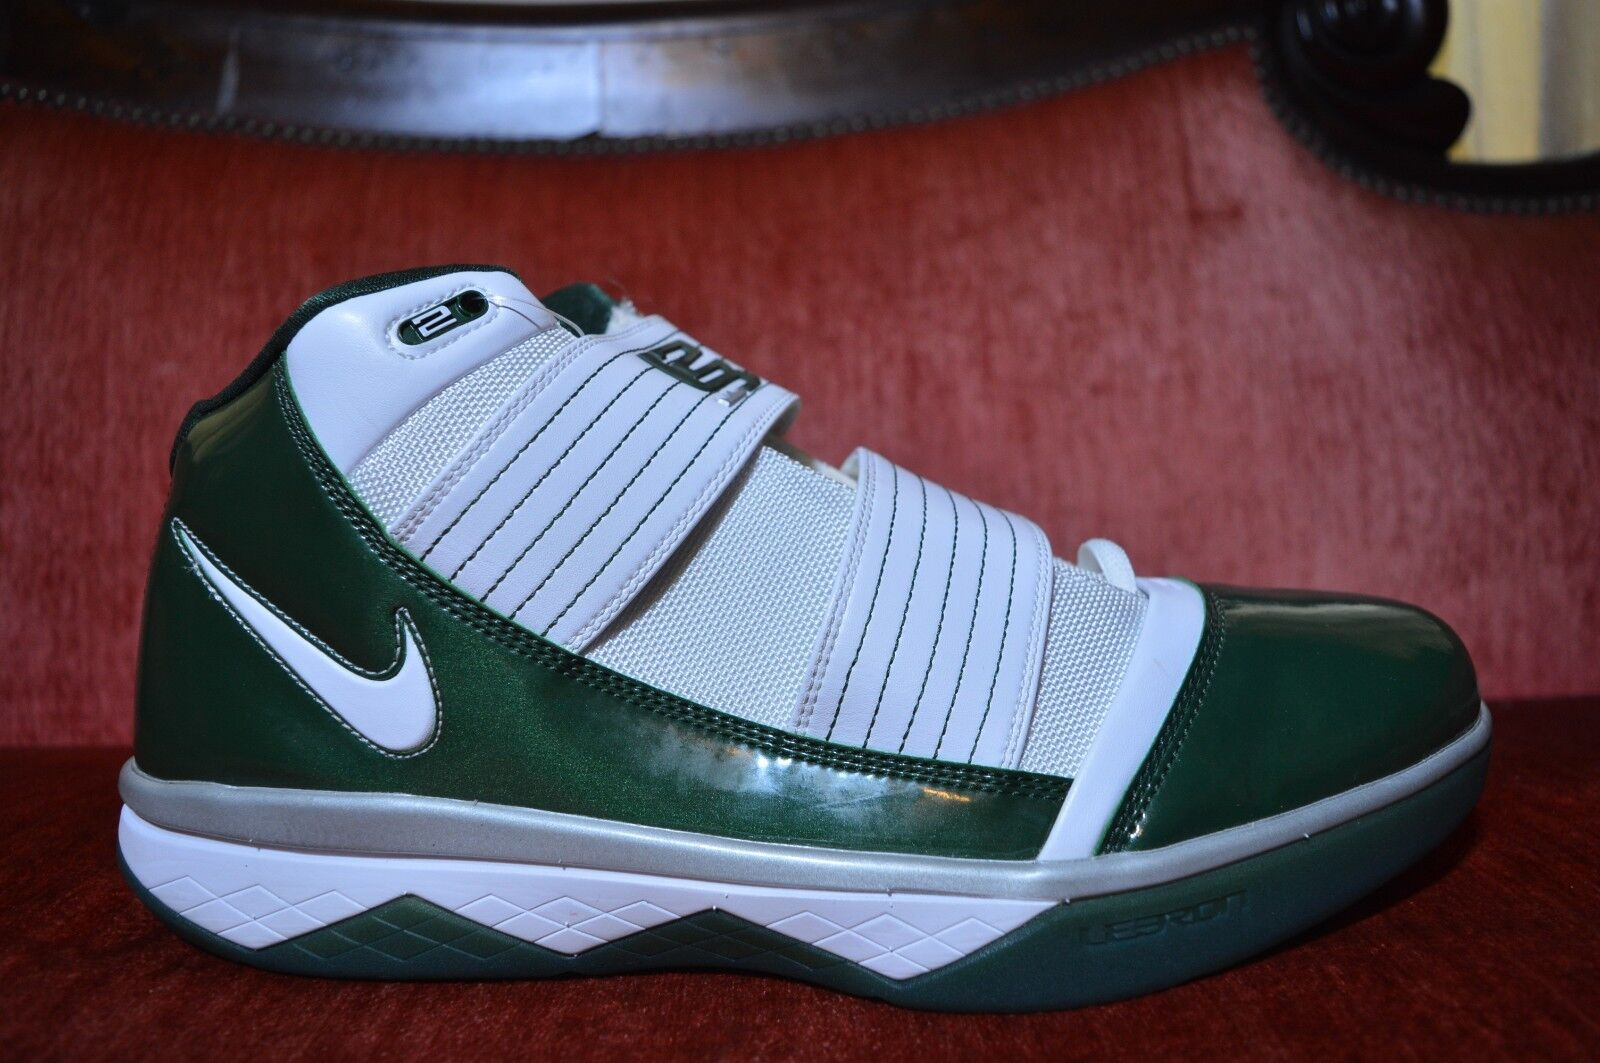 NEW Nike LeBrons Zoom Soldier III Basketball Size 14 SVSM Green White 367183-117